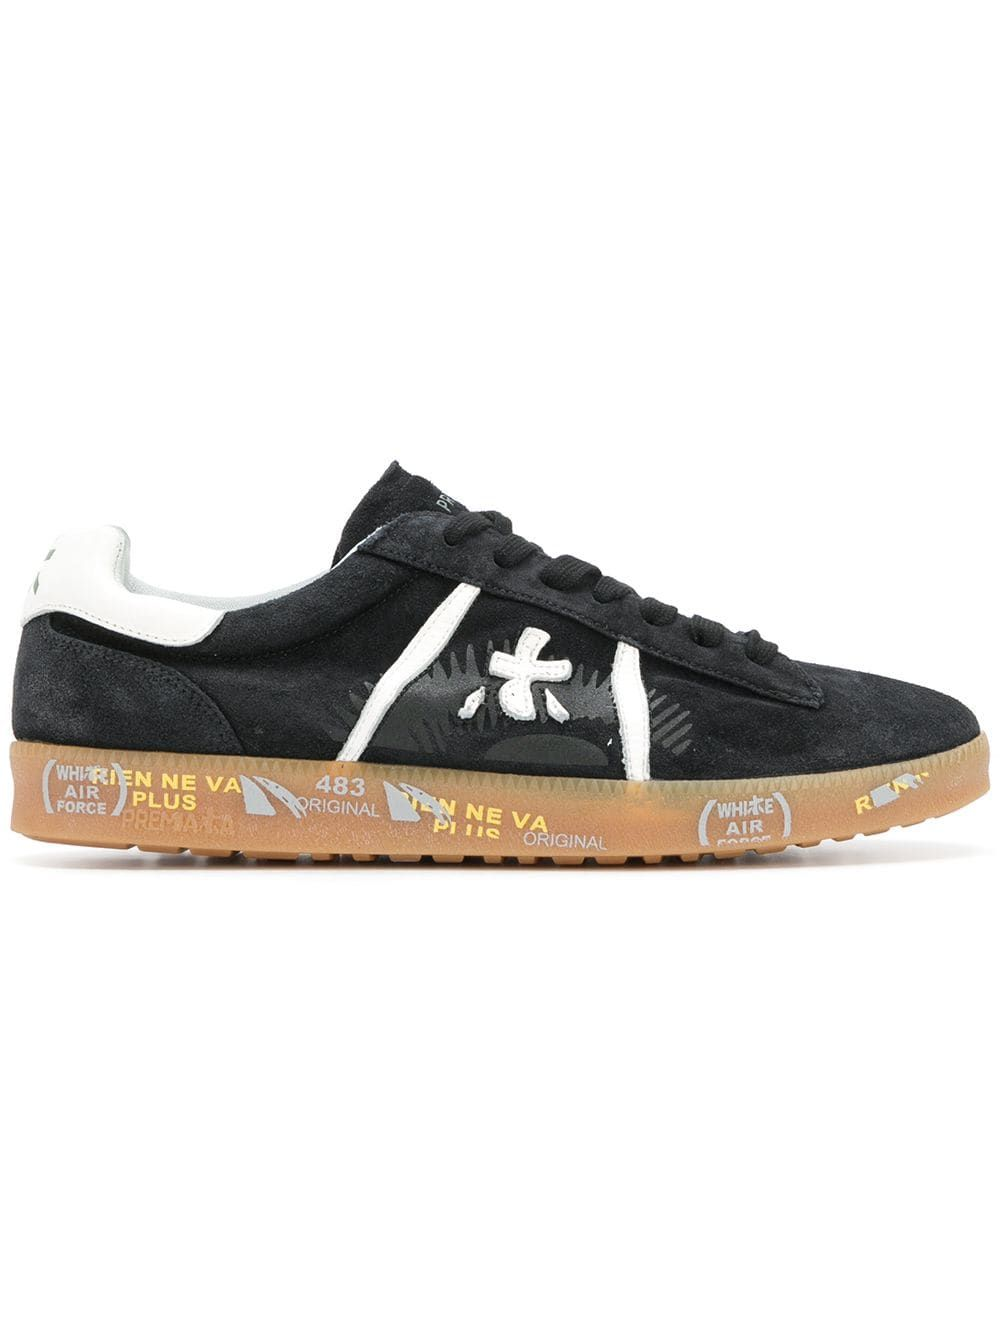 Premiata Andy sneakers Black in 2019 | Products | Sneakers